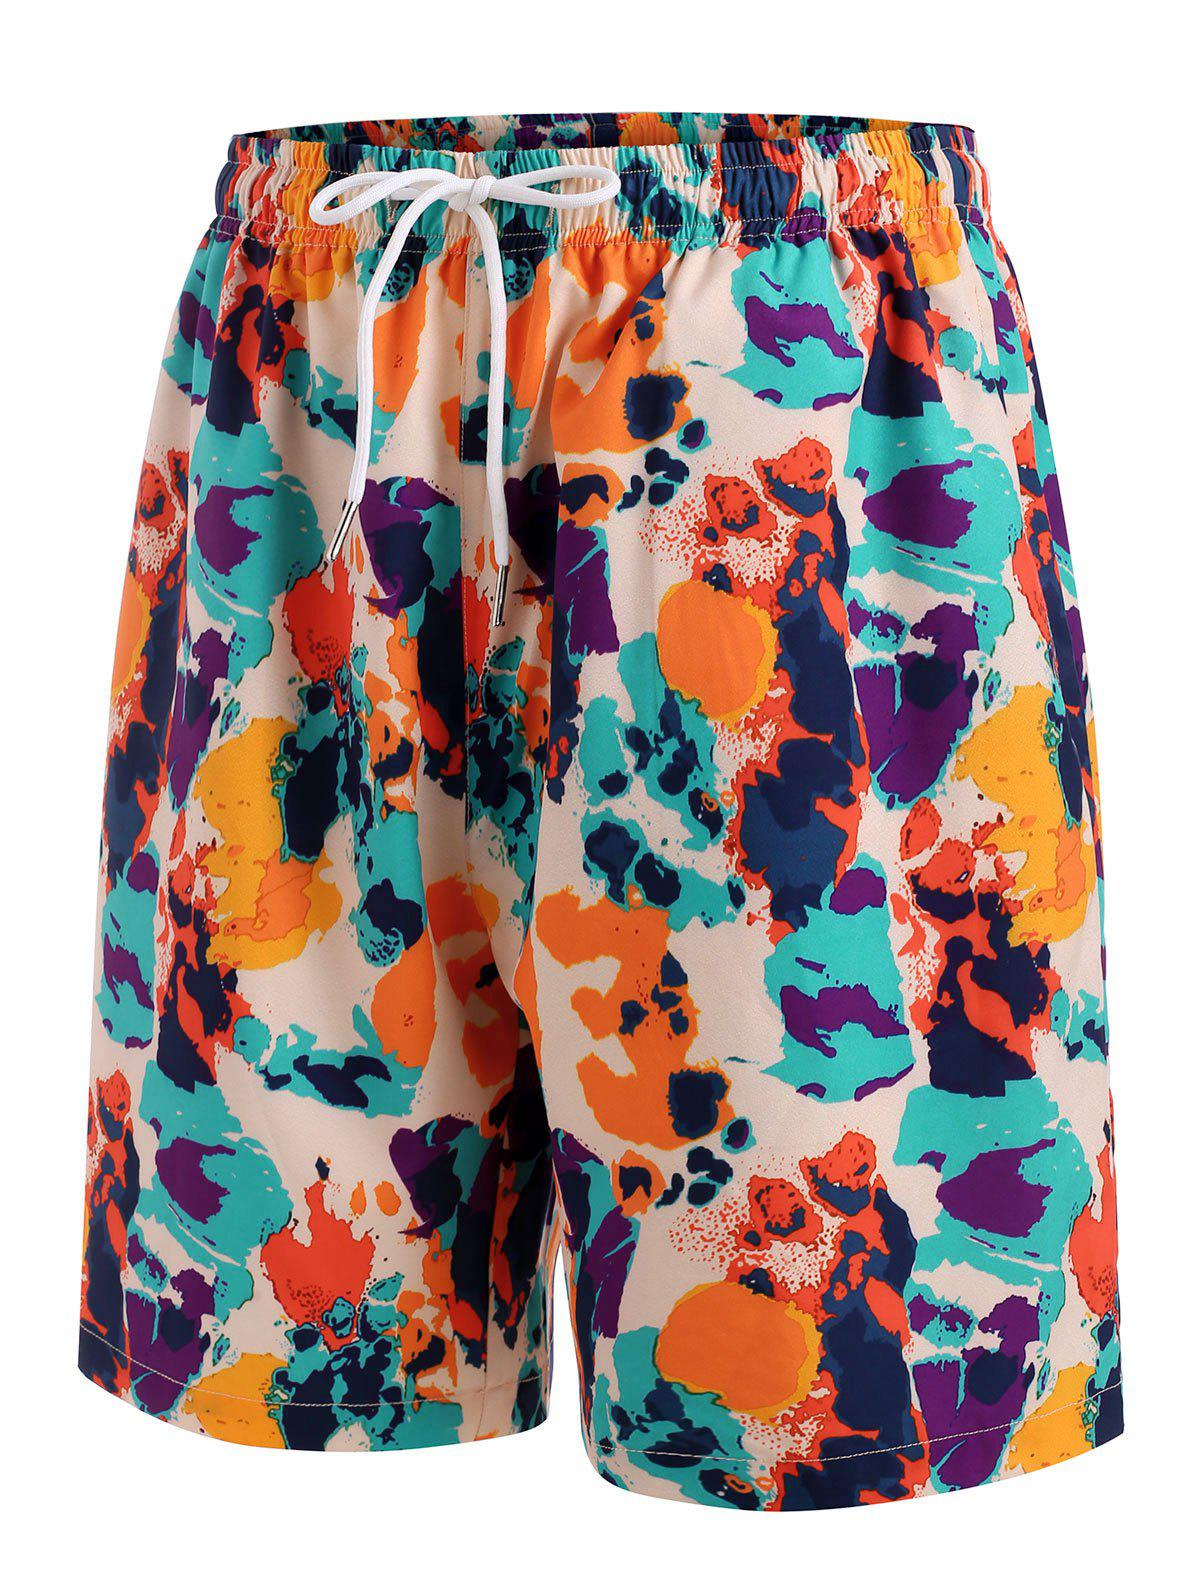 Drawstring Colorful Print Casual Shorts - multicolor S